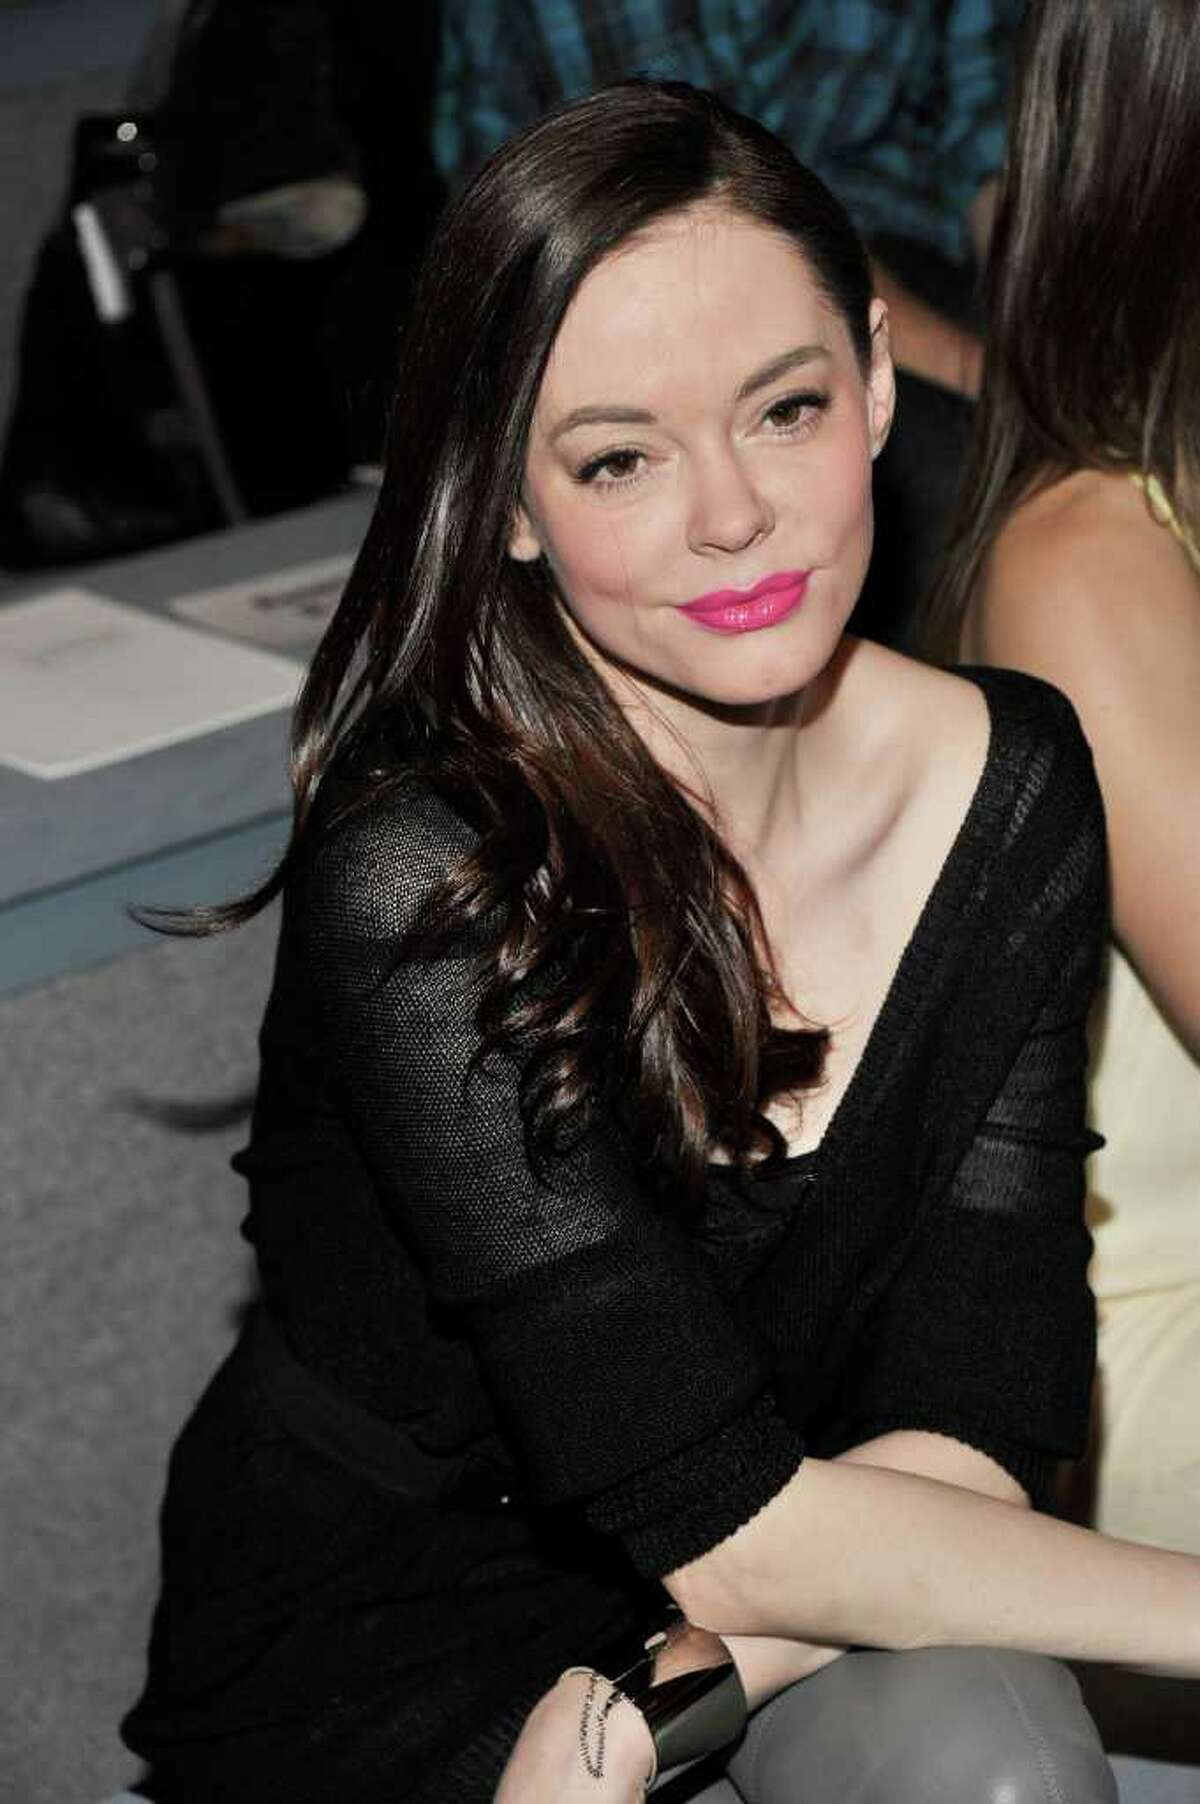 NEW YORK, NY - FEBRUARY 13: Actress Rose McGowan attends the Max Azria Fall 2011 fashion show during Mercedes-Benz Fashion Week at The Stage at Lincoln Center on February 13, 2011 in New York City. (Photo by Stephen Lovekin/Getty Images for IMG) *** Local Caption *** Rose McGowan